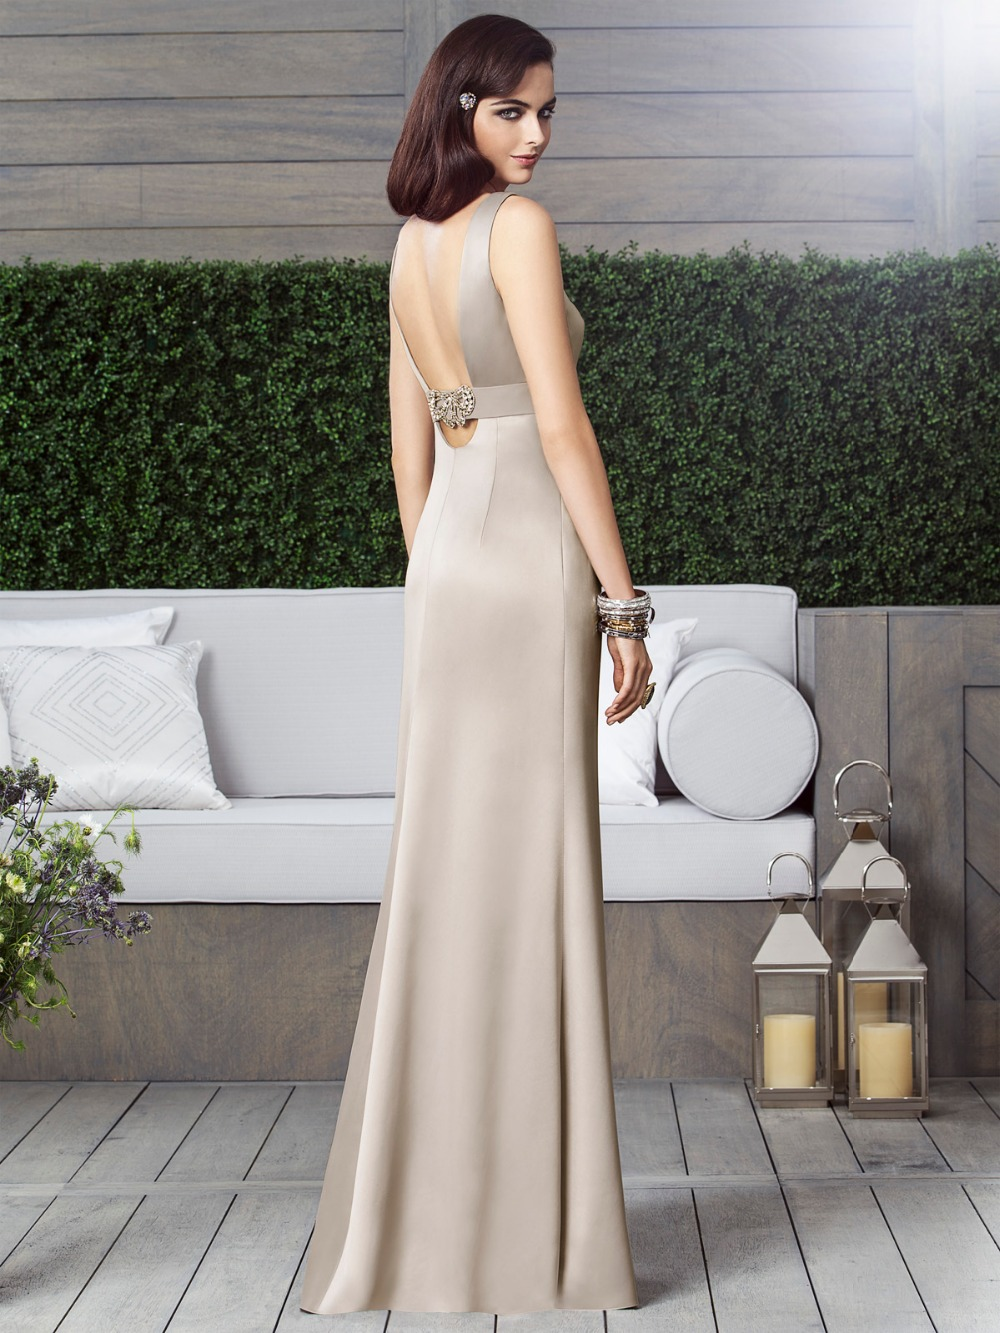 Glamorous nude bridesmaid dresses sexy low back women formal dress glamorous nude bridesmaid dresses sexy low back women formal dress for wedding custom size brautjungfernkleider 2015 xhb19 in bridesmaid dresses from ombrellifo Choice Image